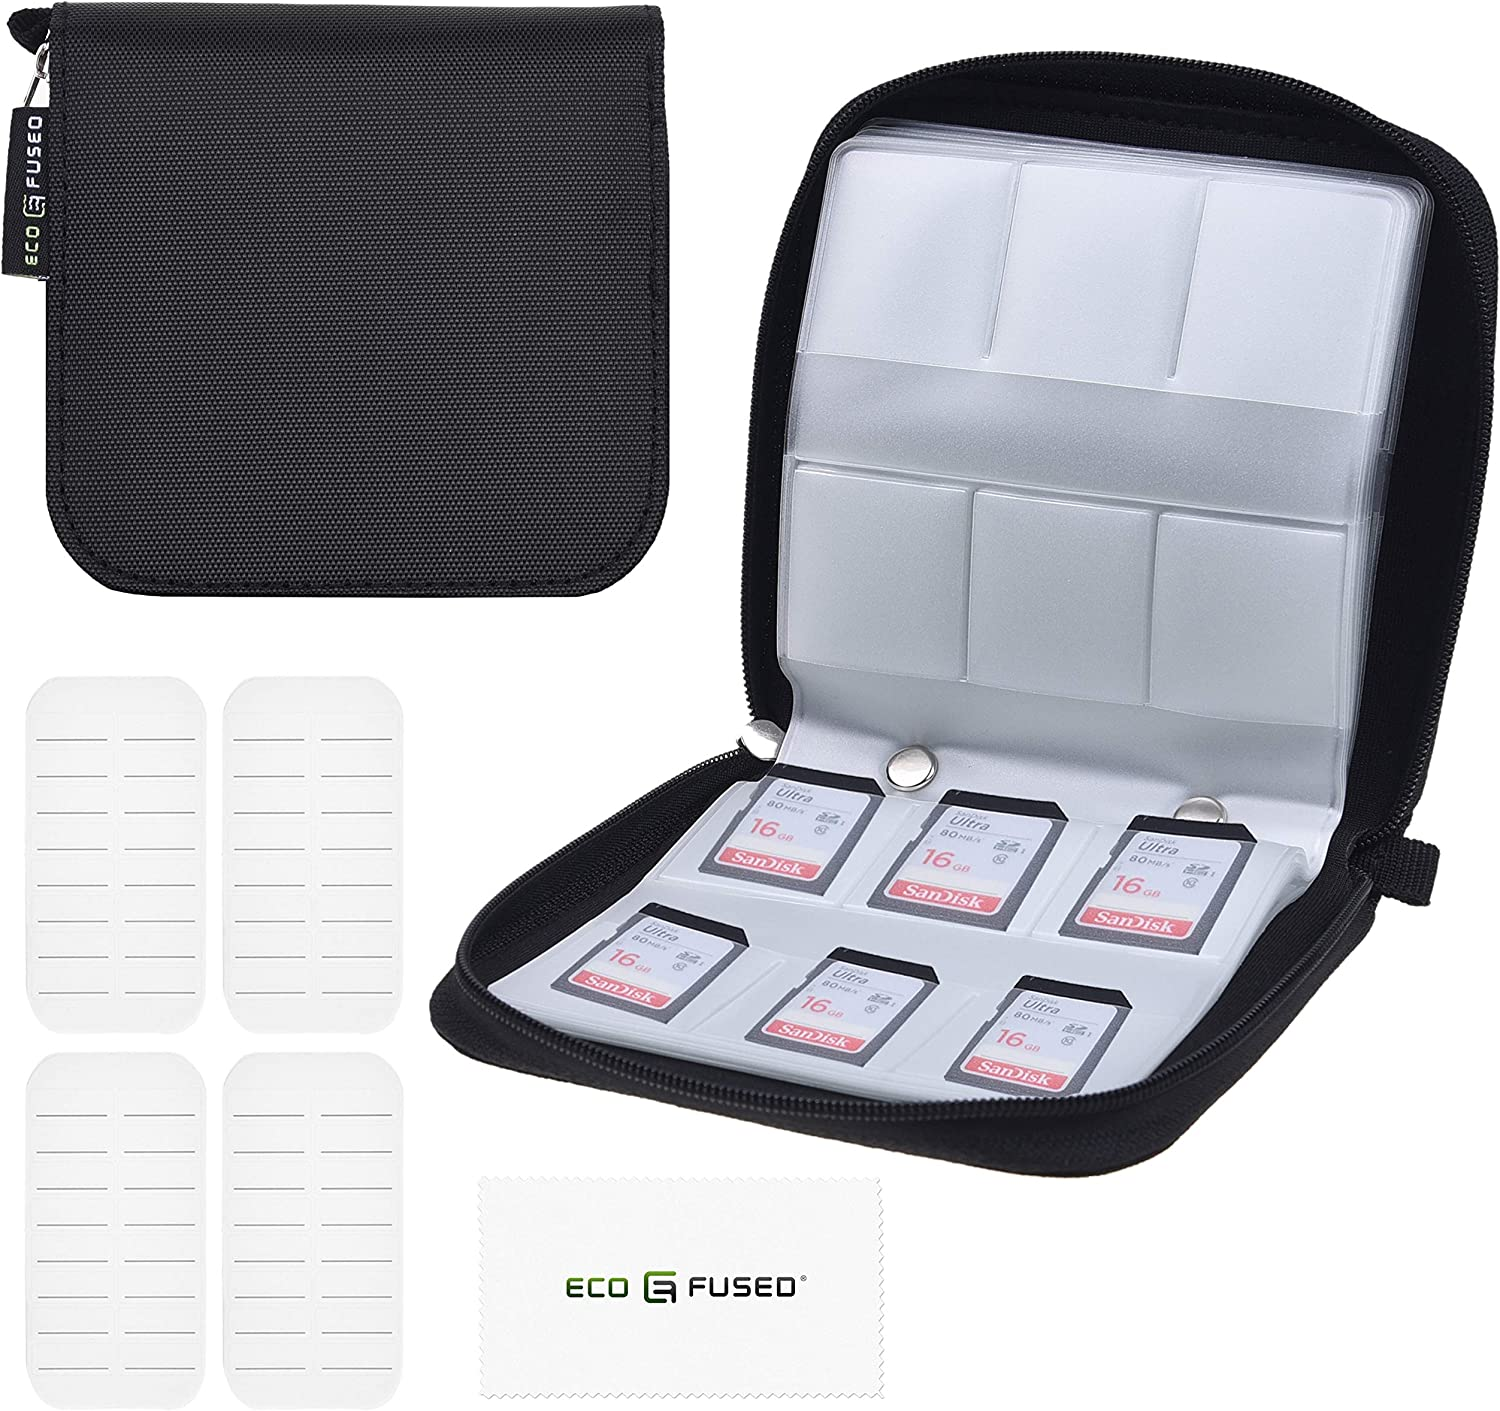 Memory Card Case - Fits up to 22x SD, SDHC, Micro SD, Mini SD and 4X CF - Holder with 22 Slots (8 Pages) - for Storage and Travel